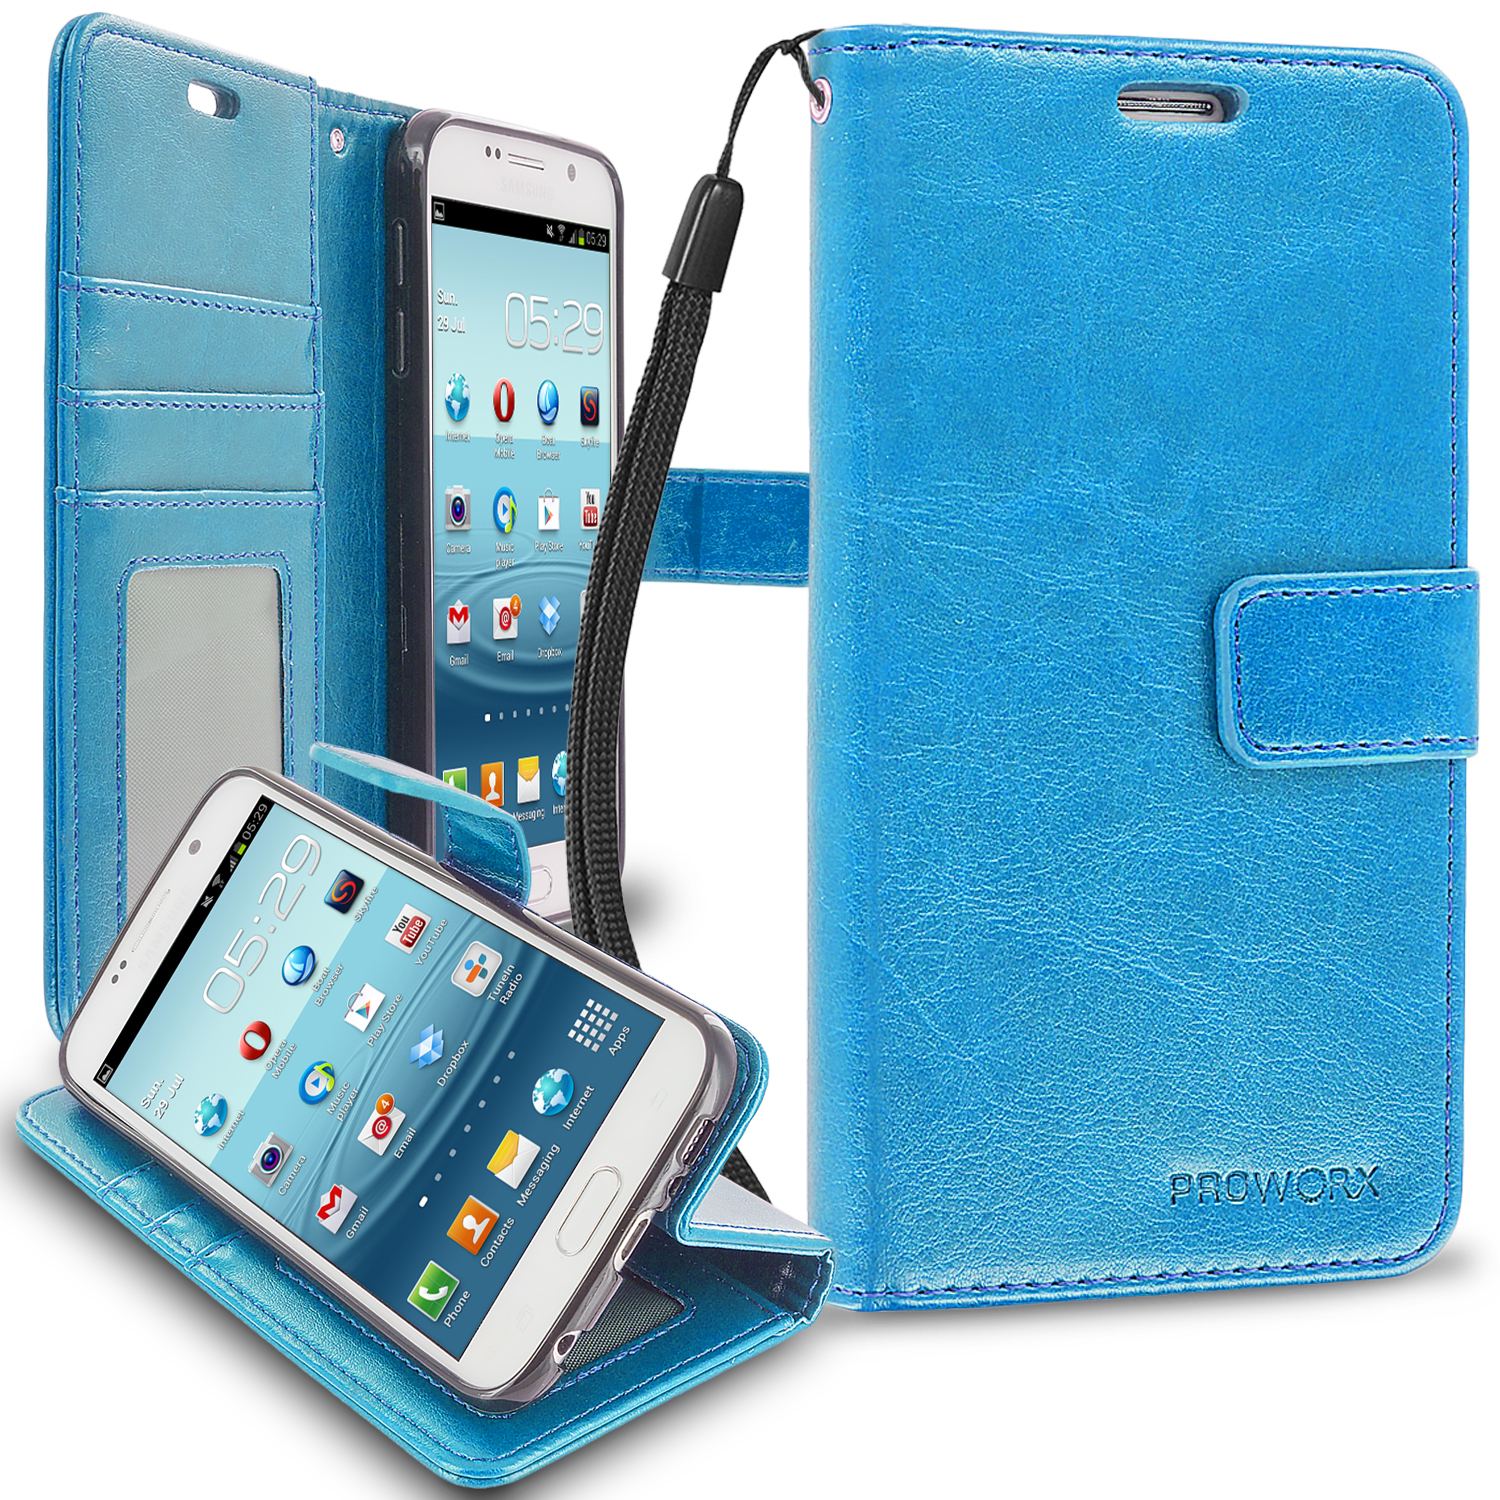 Samsung Galaxy S6 Baby Blue ProWorx Wallet Case Luxury PU Leather Case Cover With Card Slots & Stand